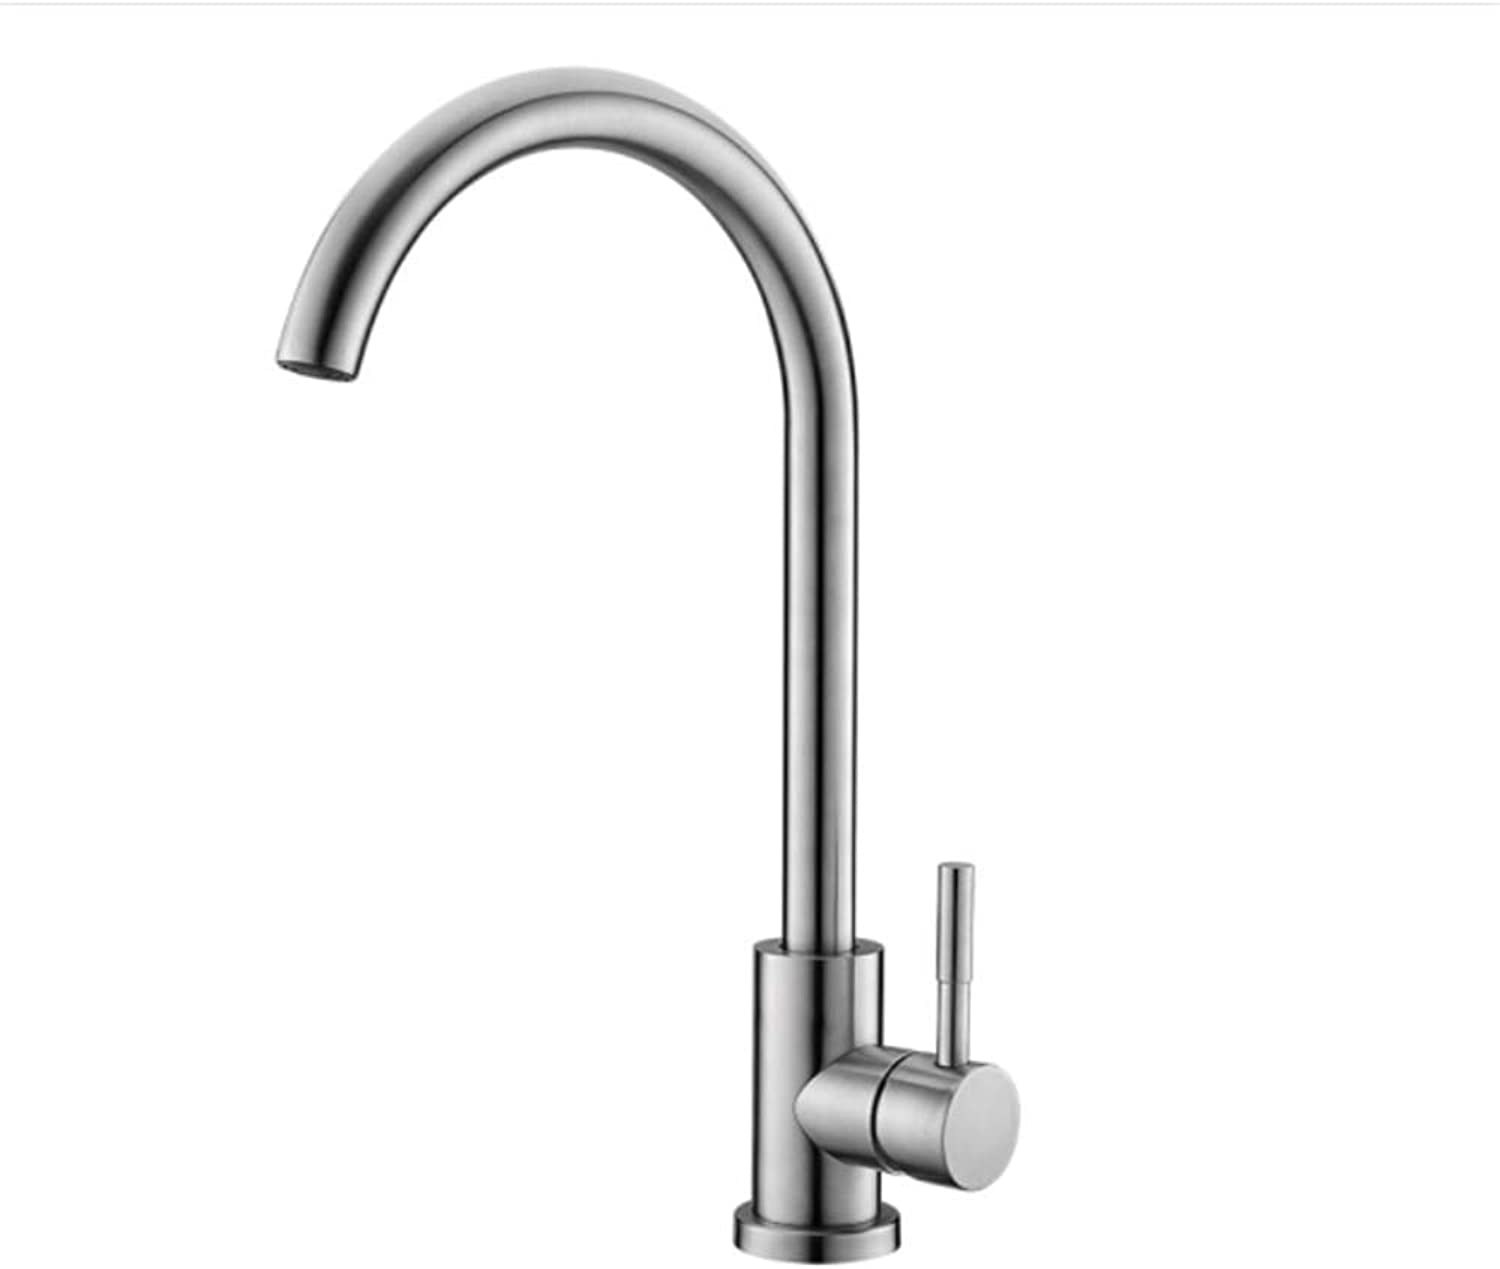 Basin Faucetkitchen Faucet Sink Dishpan 304 Stainless Steel Cold and Hot Faucet